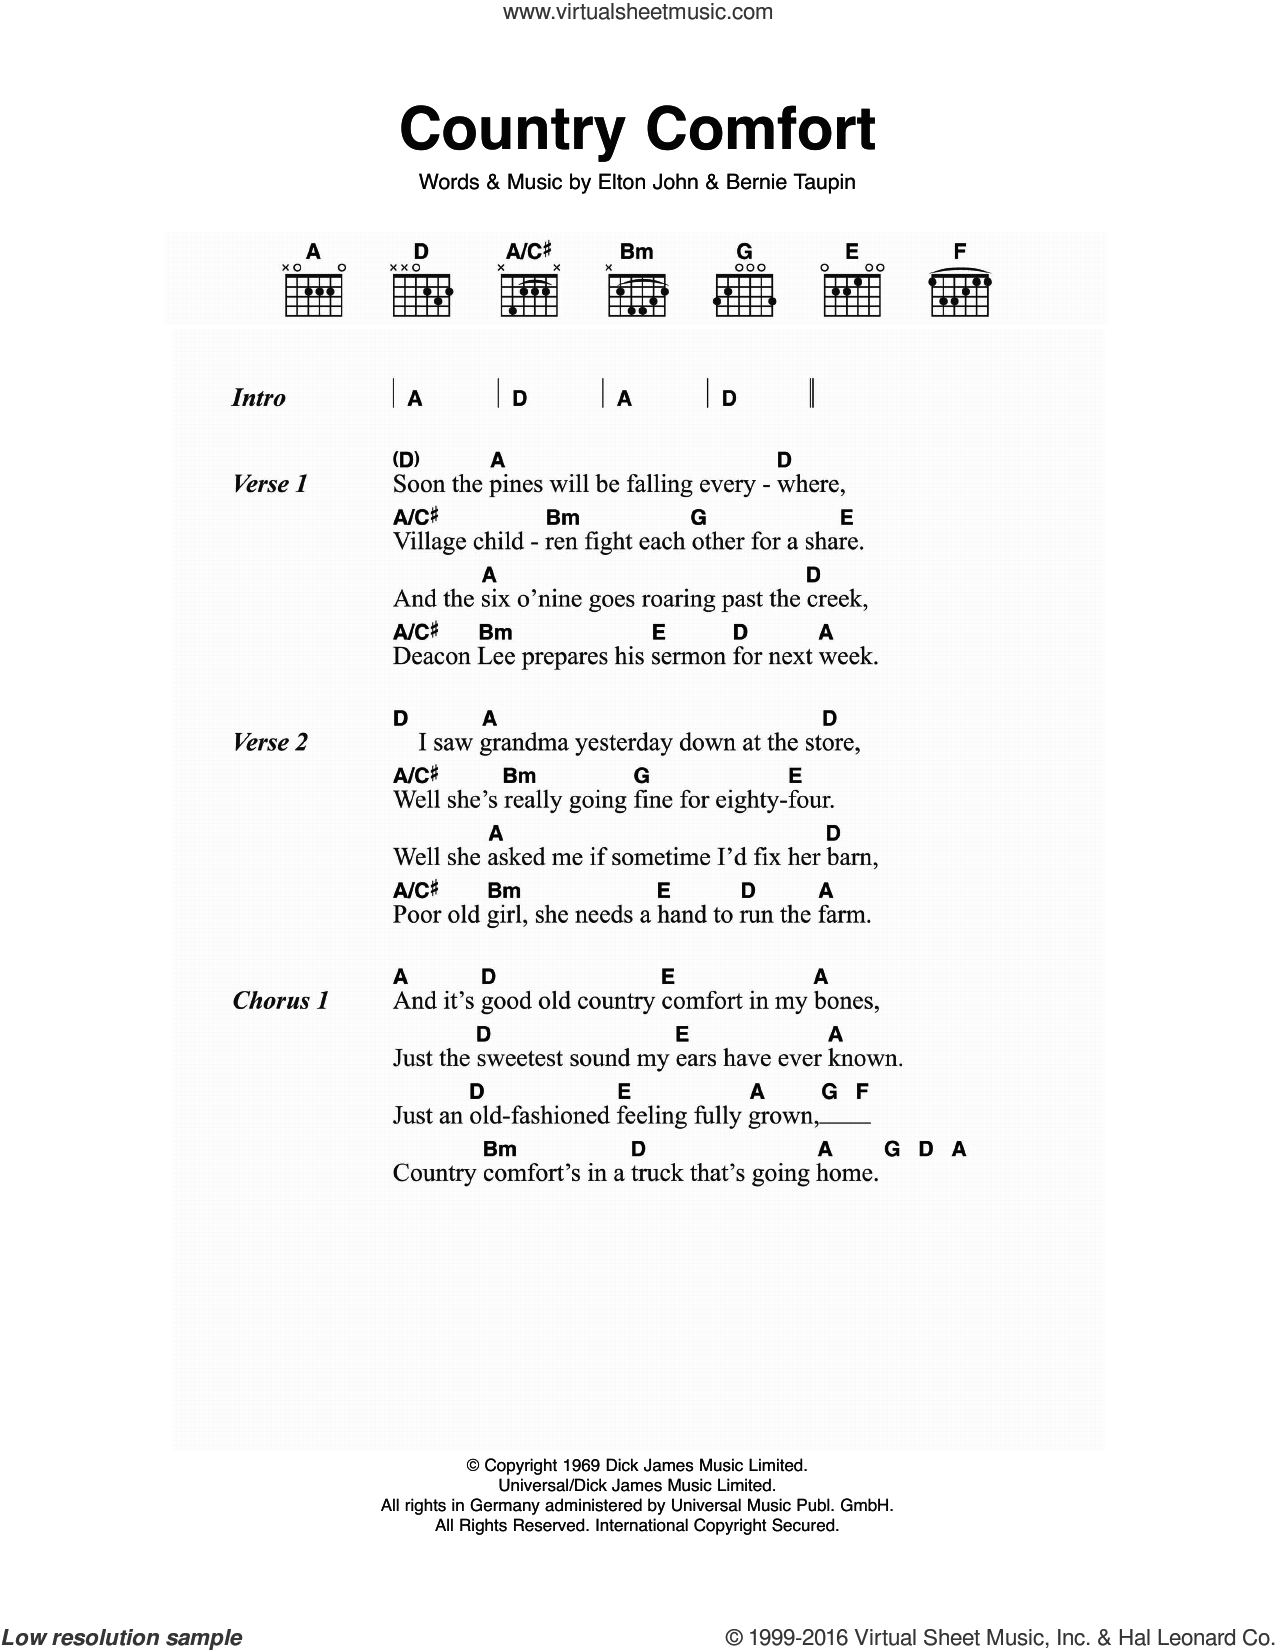 Country Comfort sheet music for guitar (chords) by Elton John and Bernie Taupin, intermediate skill level